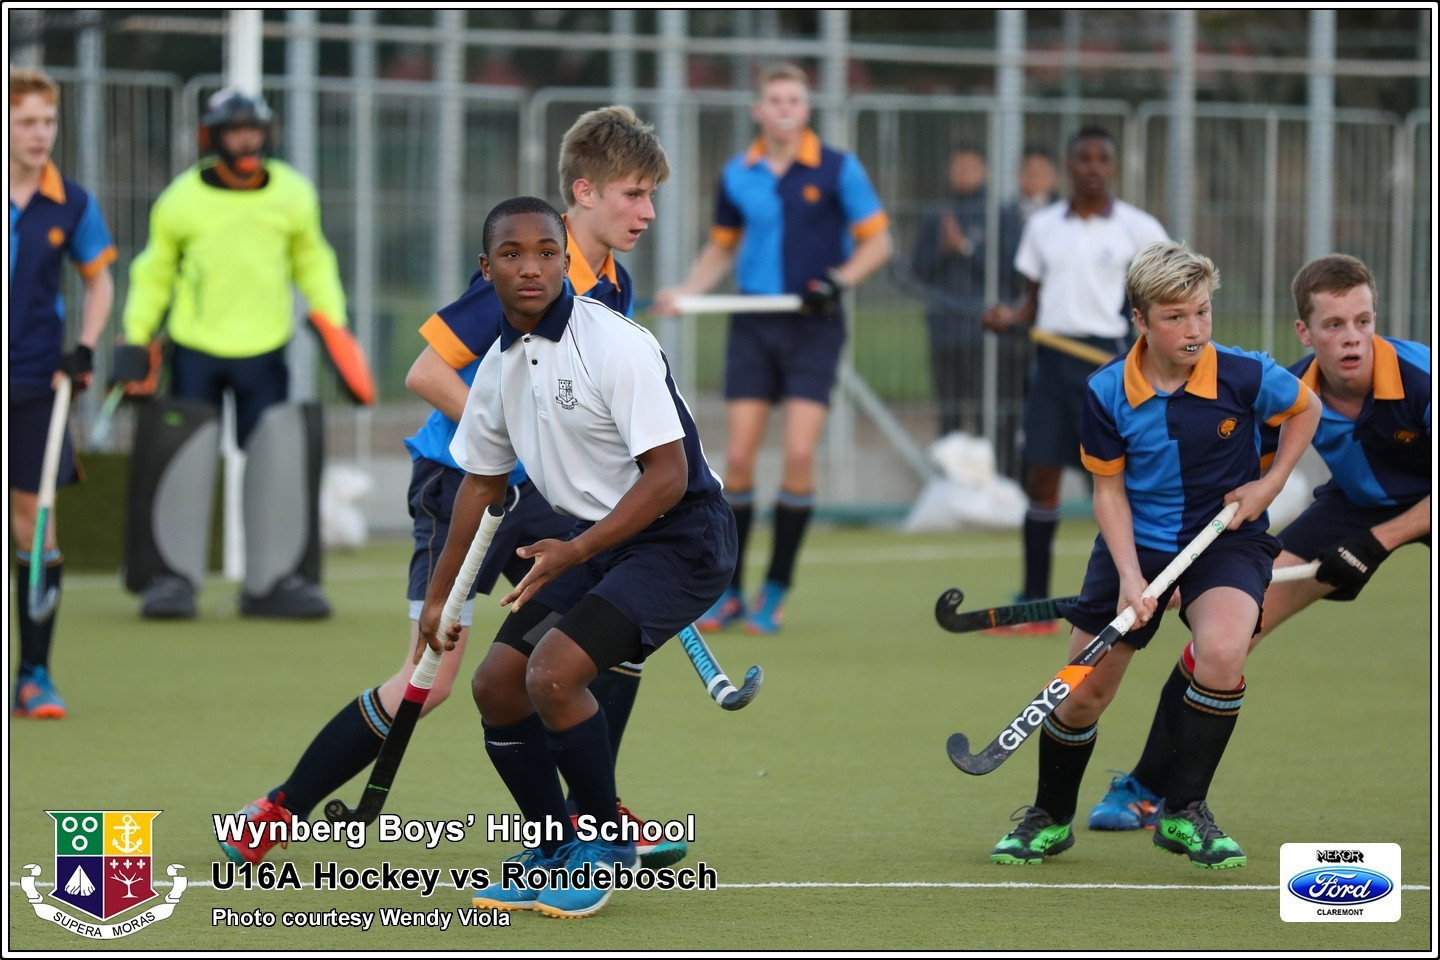 U16A vs Rondebosch, Friday 3 August 2018